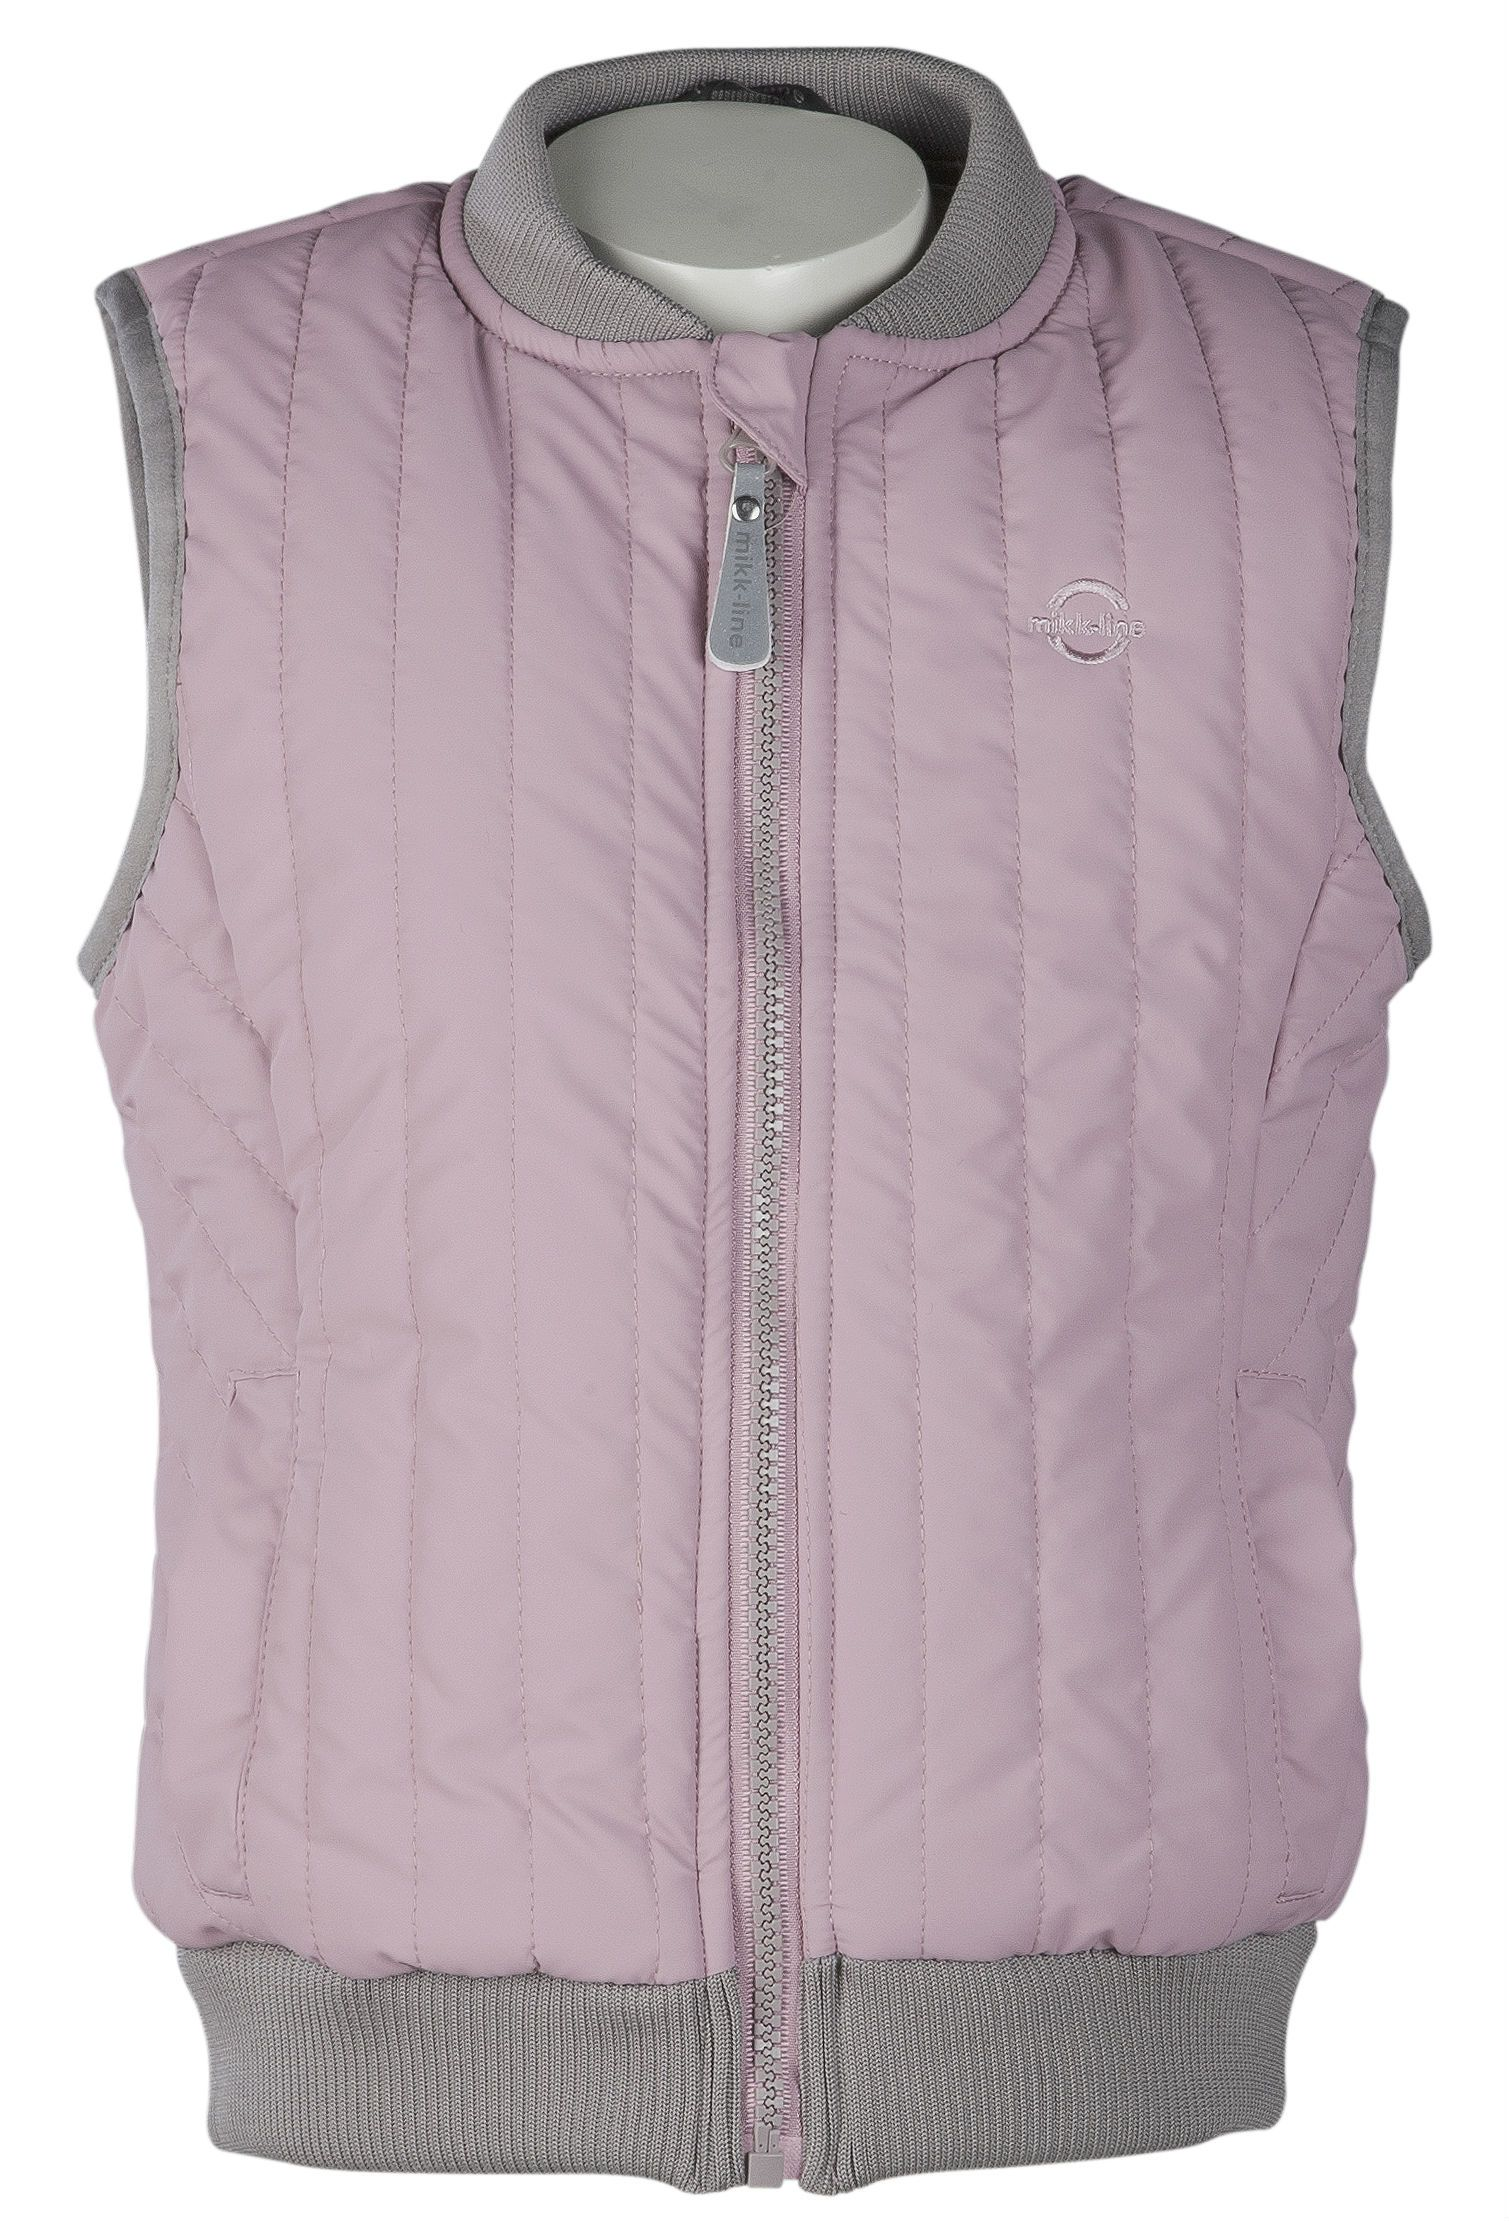 Image of Duvet termo vest fra Mikk-Line - Dusty Rose (16734-516)